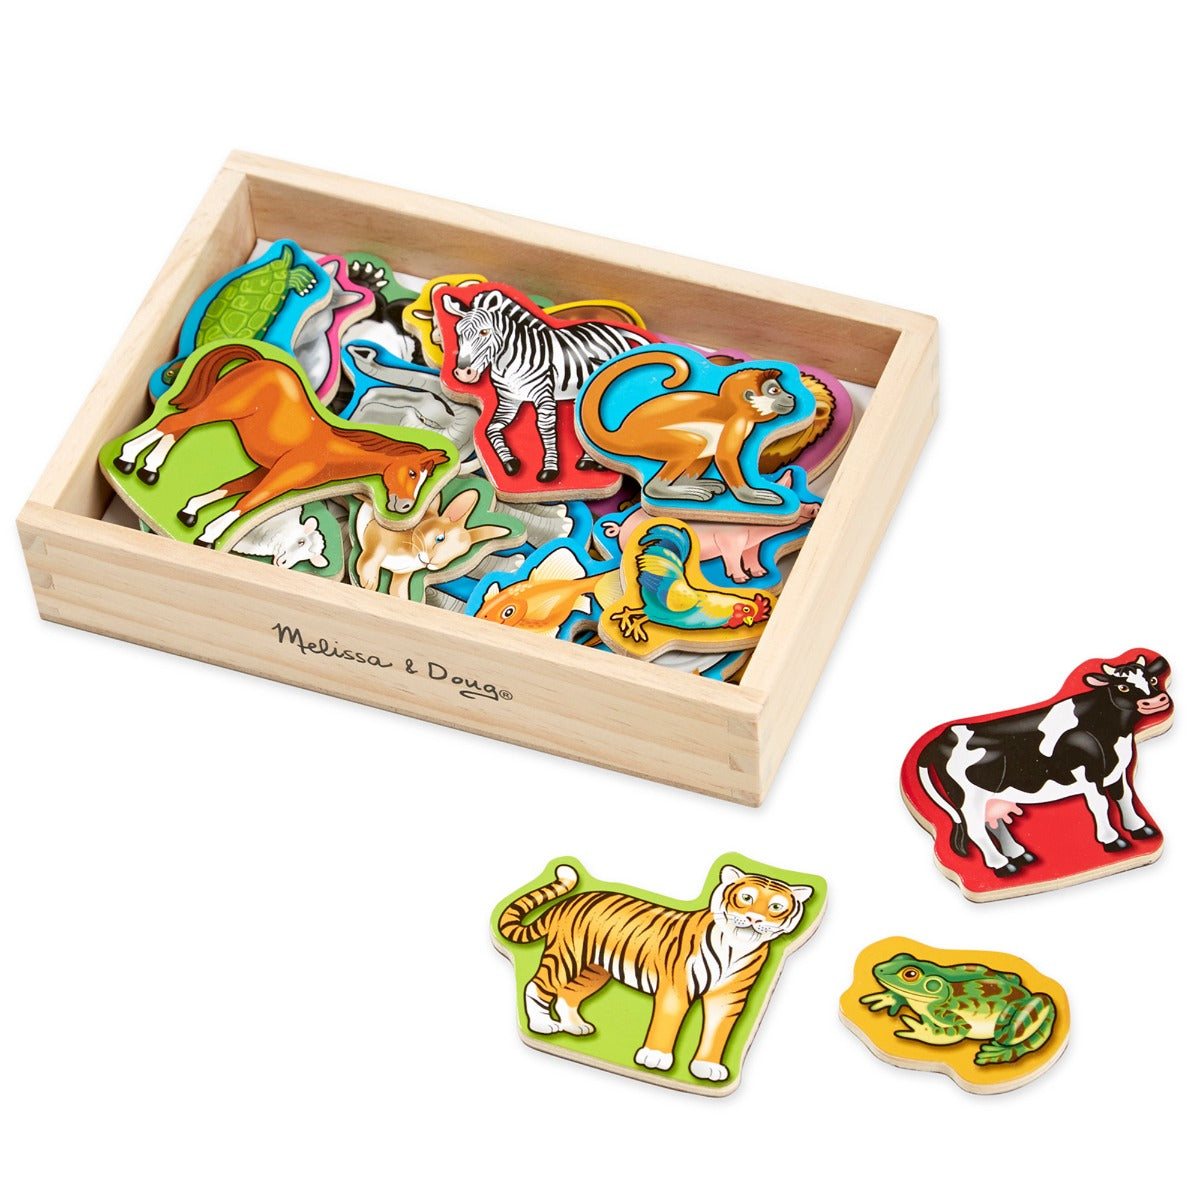 Melissa and Doug Wooden Animal Magnets in box